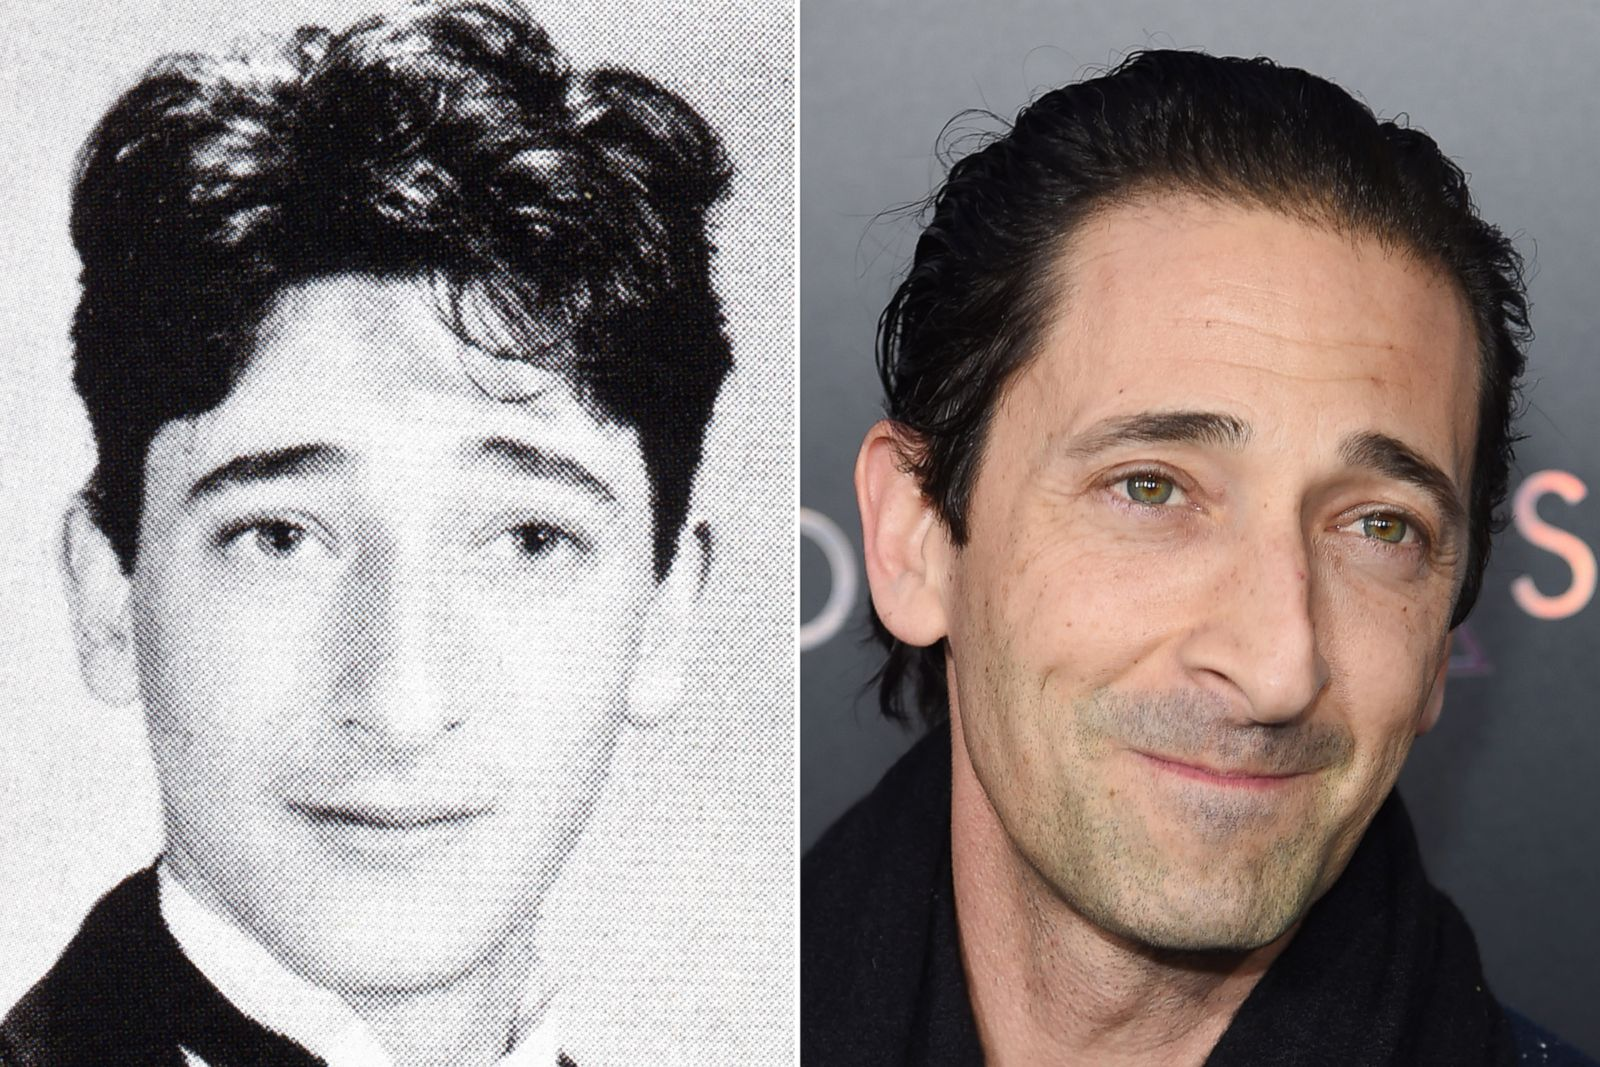 ' ' from the web at 'https://s.abcnews.com/images/Entertainment/HT-GTY-Adrien-Brody-ml-170413_3x2_1600.jpg'